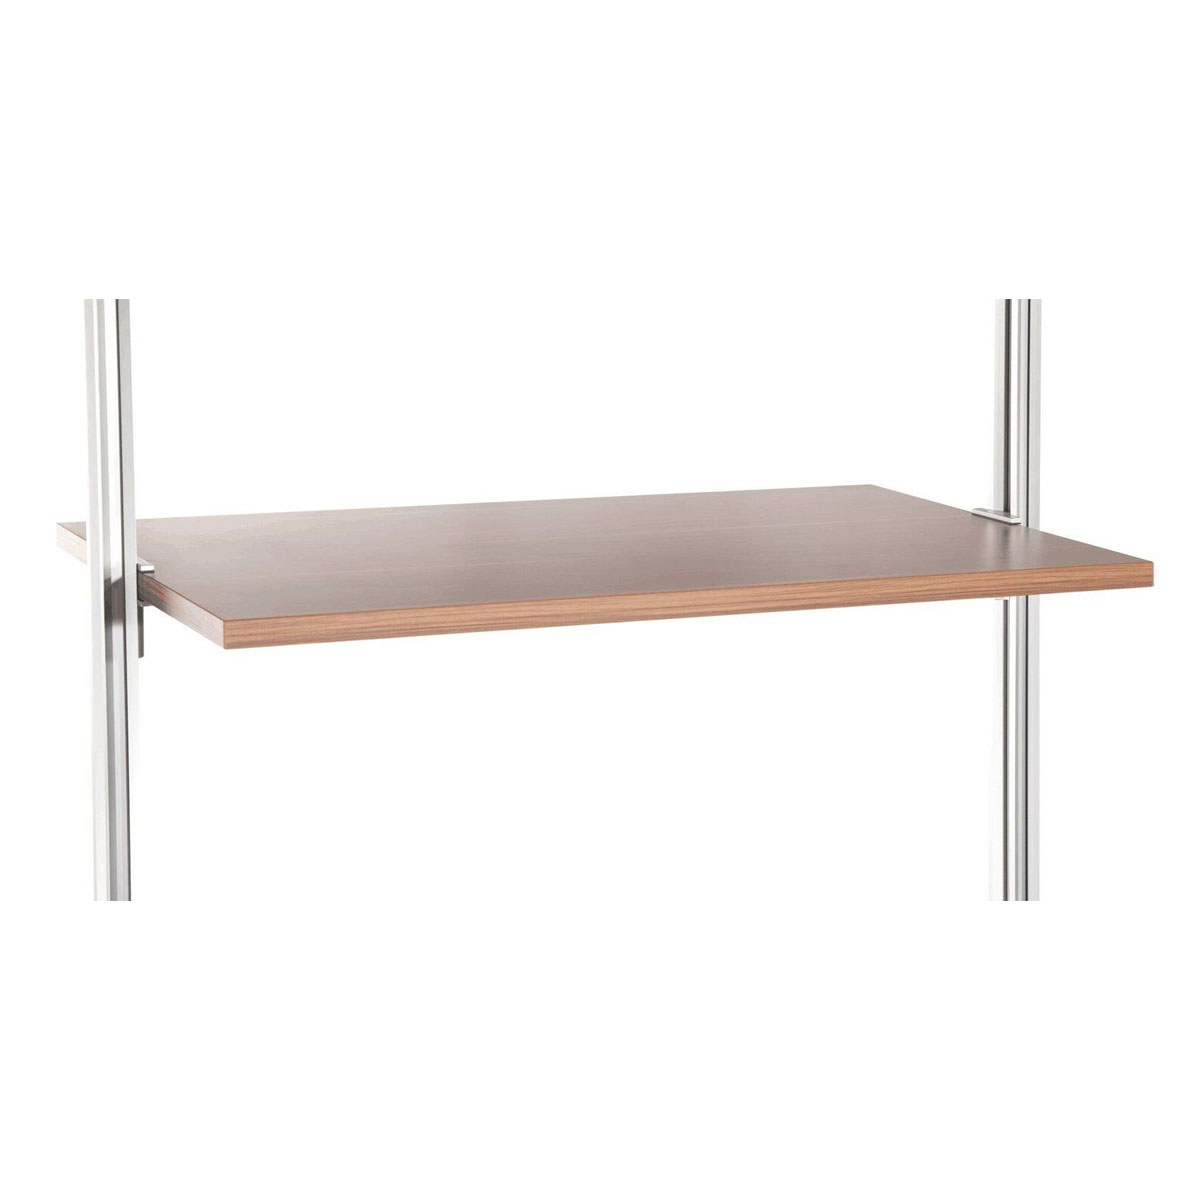 Relax Walnut Shelf Kit 1220x500mm